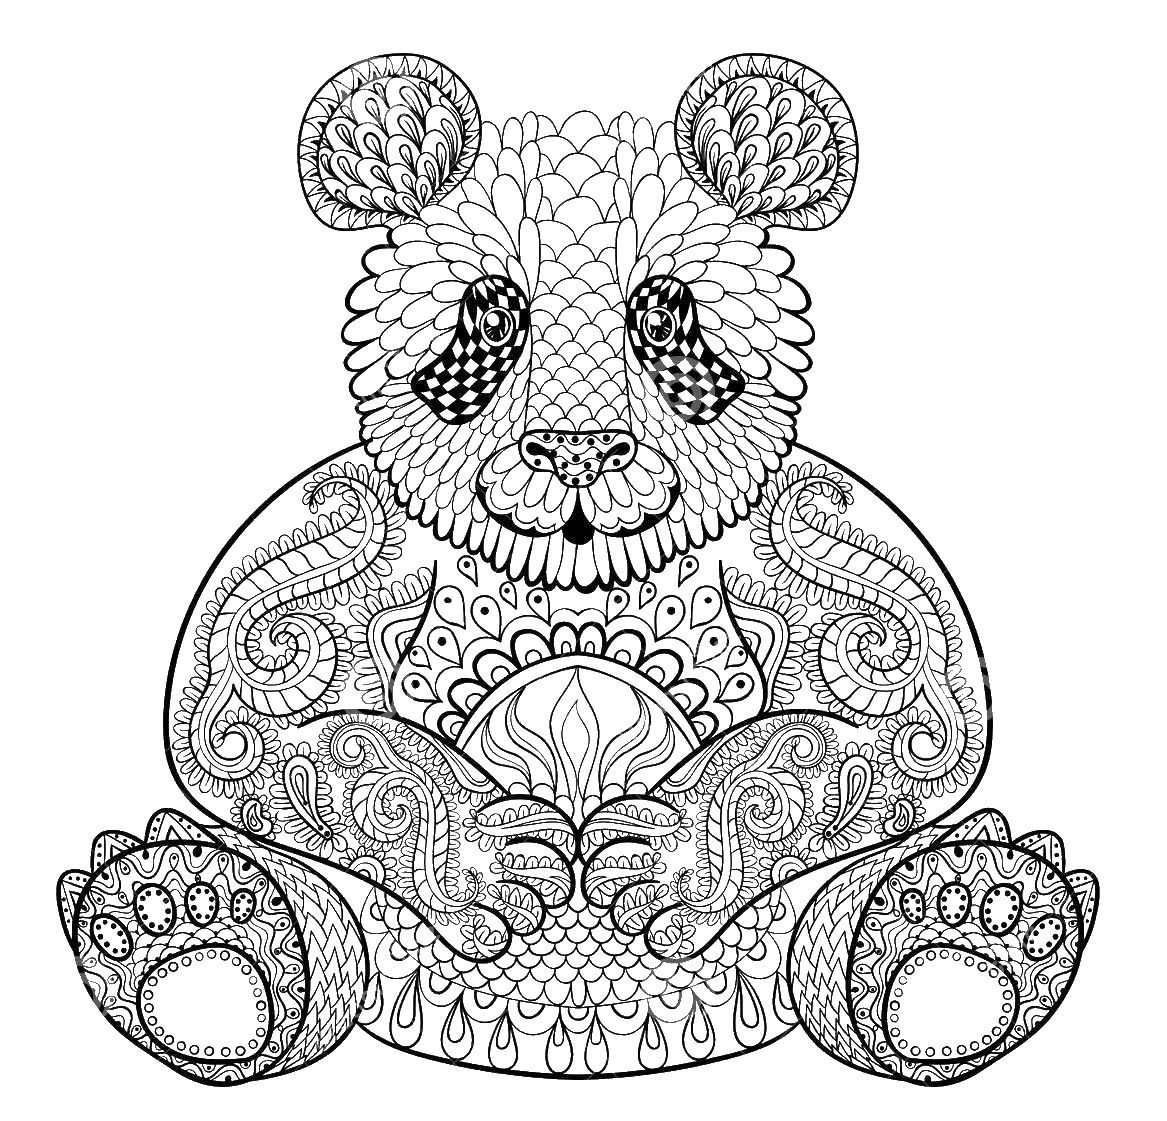 Adult Coloring Pages Panda | Adult Coloring Pages and ...